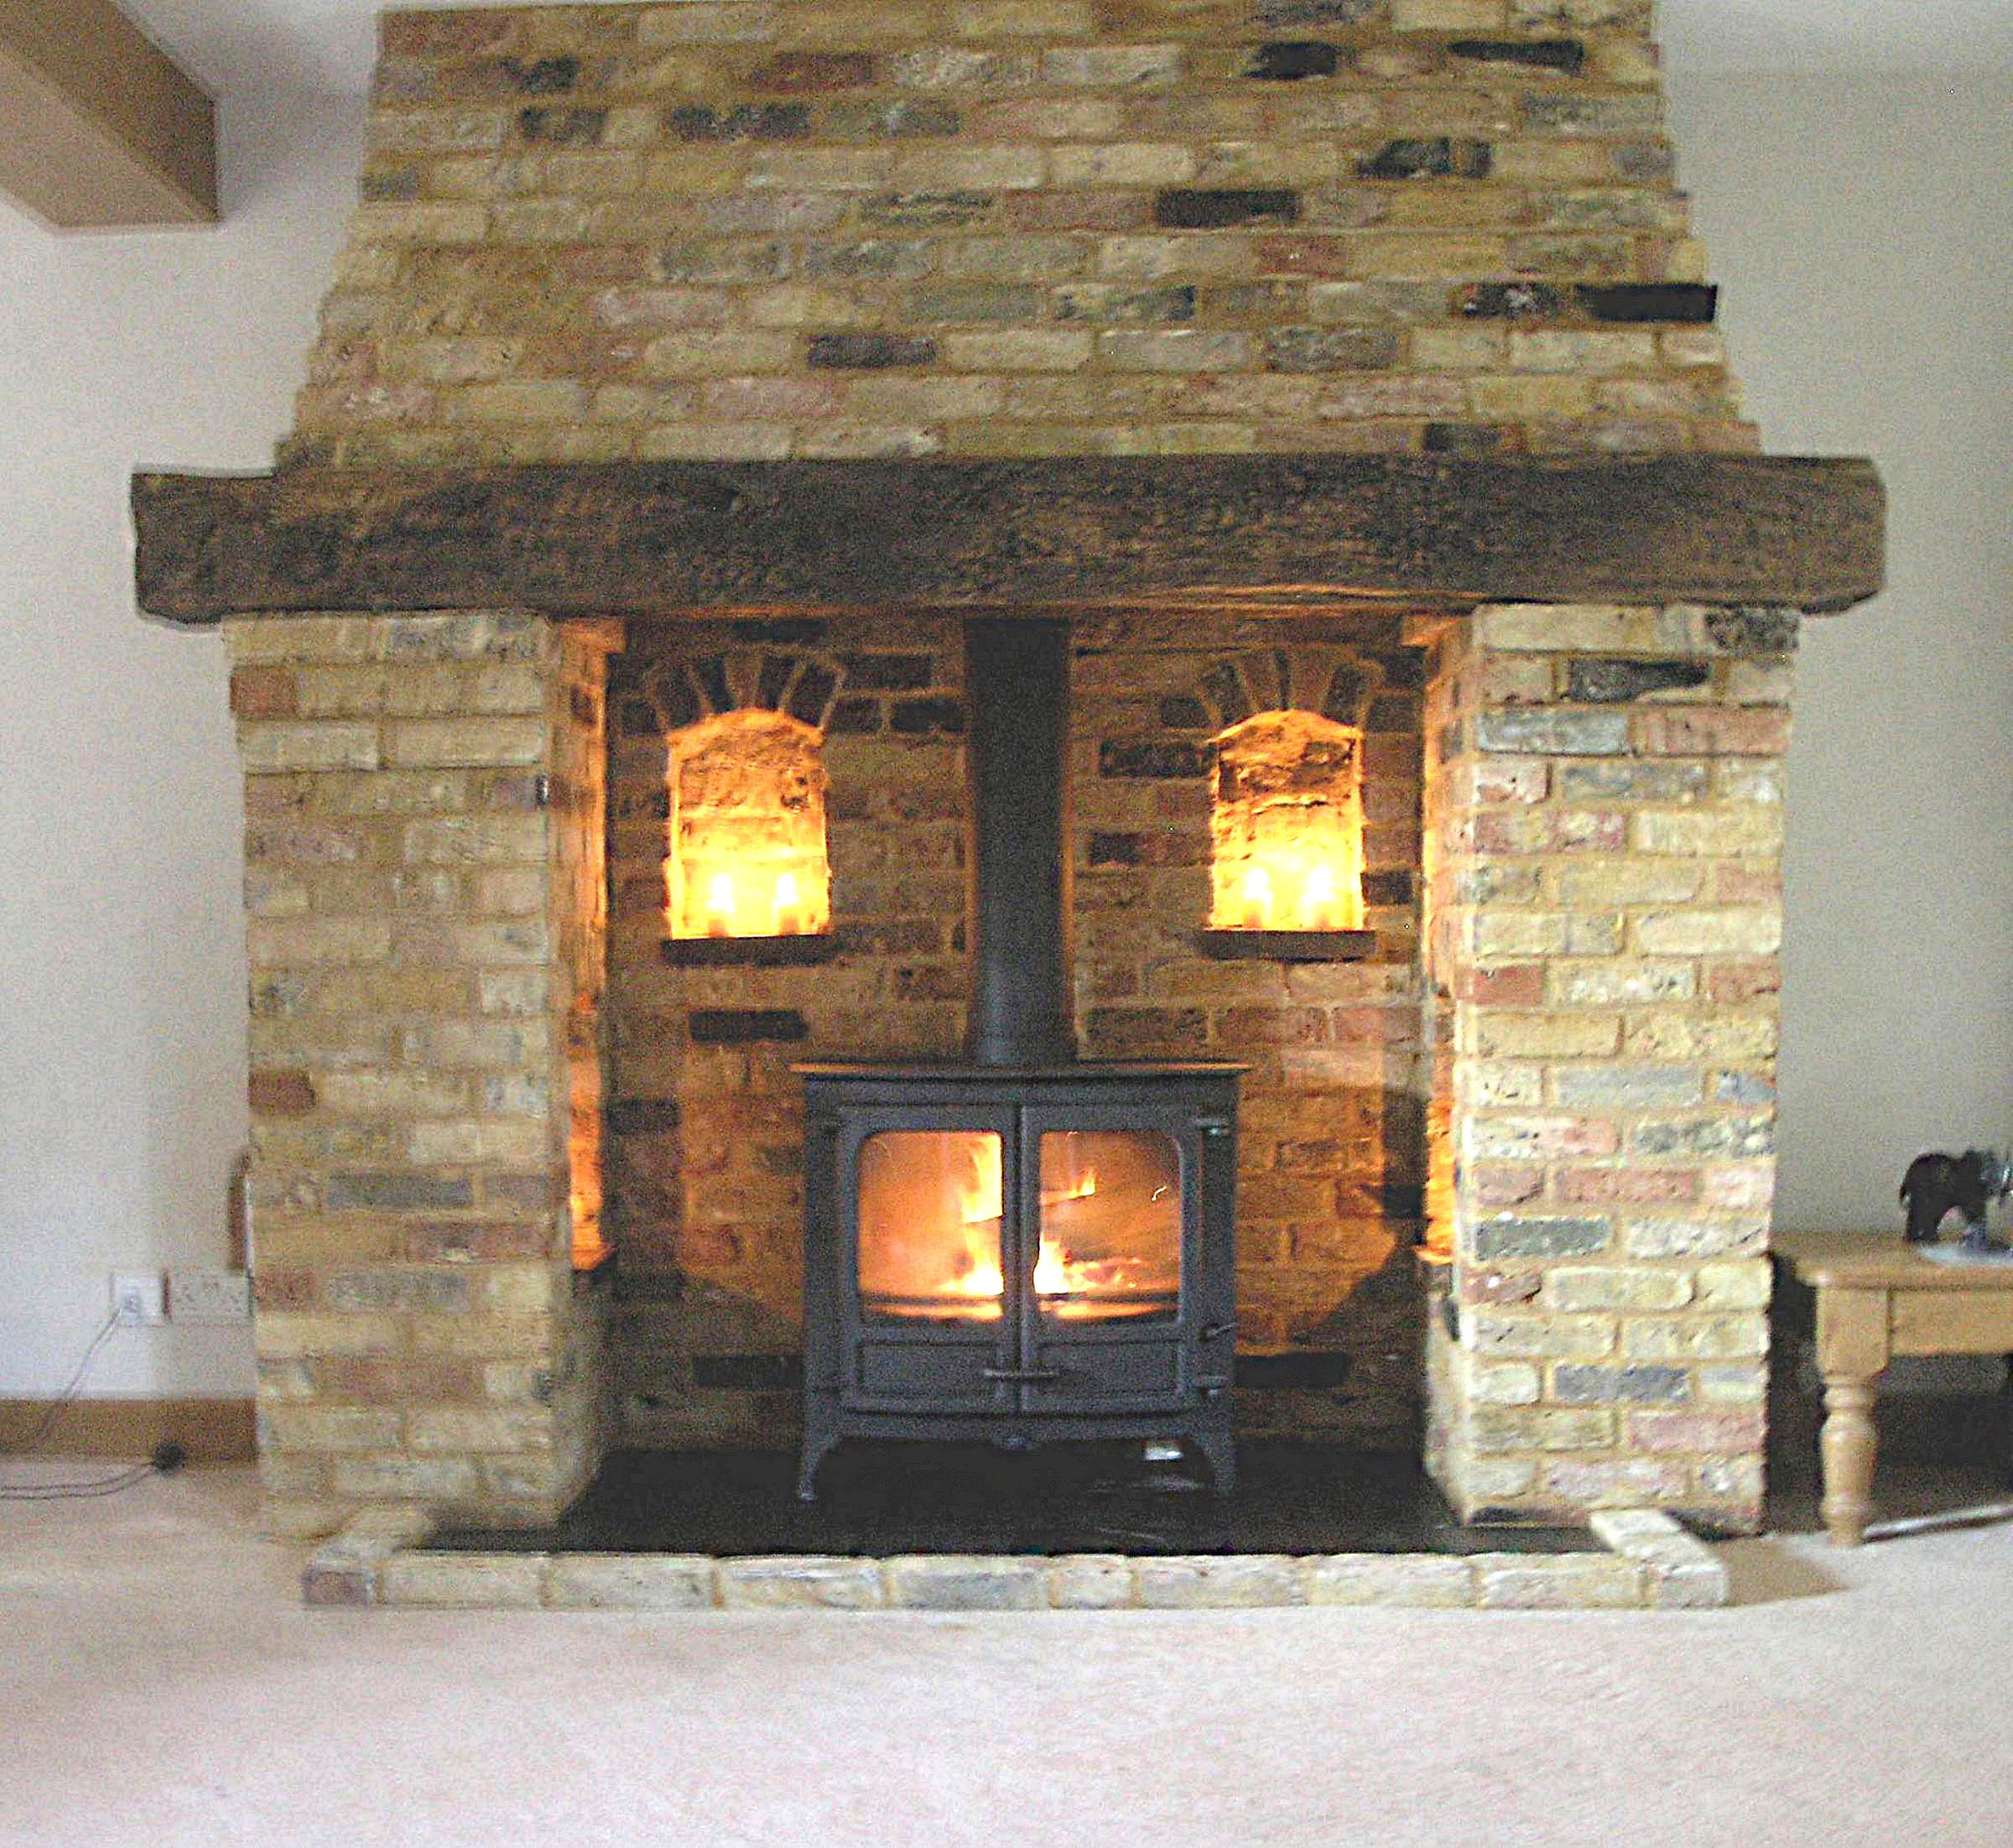 Wood Stove Hearth Designs: Bespoke Reclaimed Brick And Oak Inglenook Fireplace With A